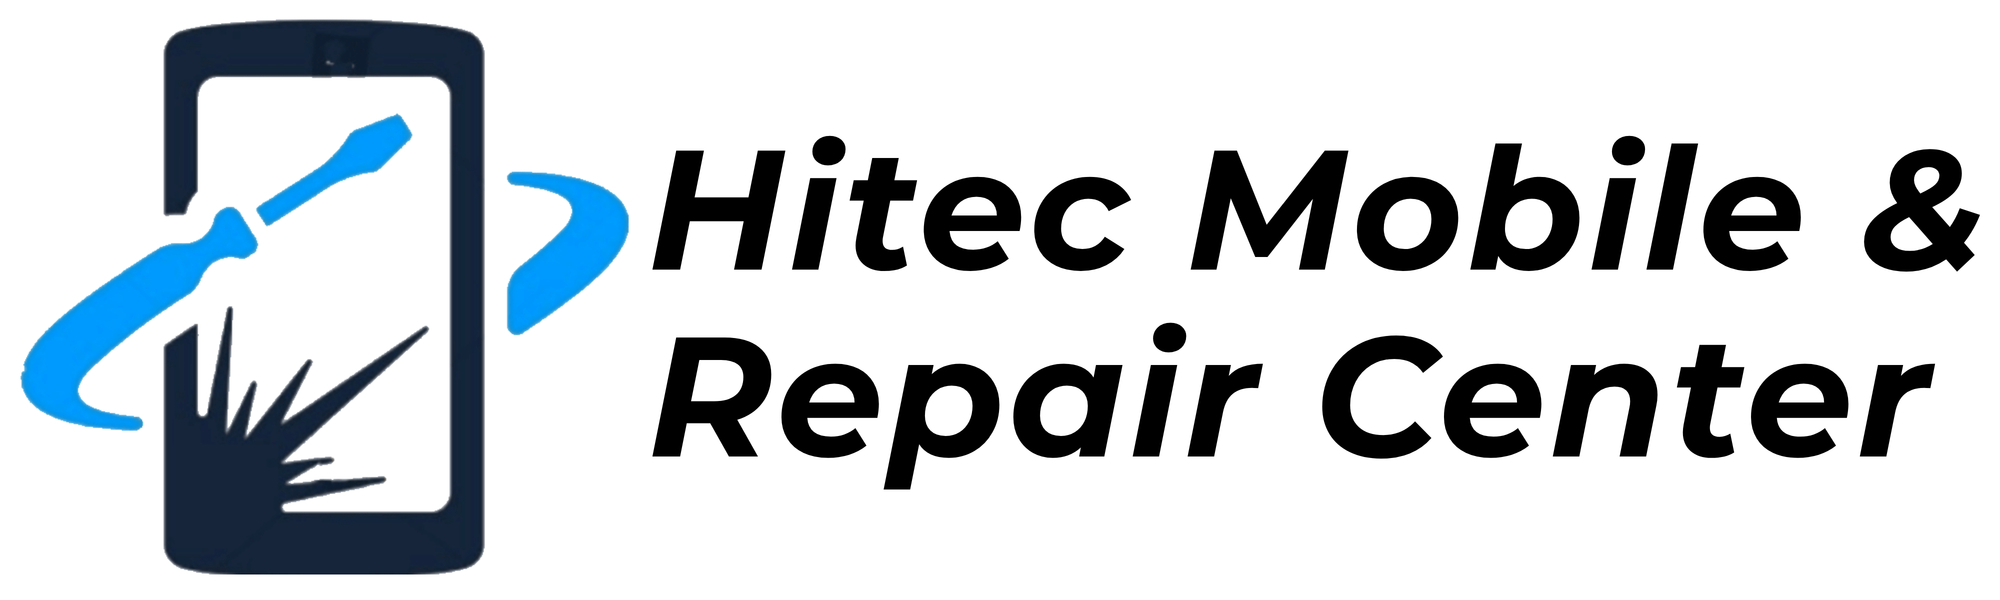 phone and macbook repair shop